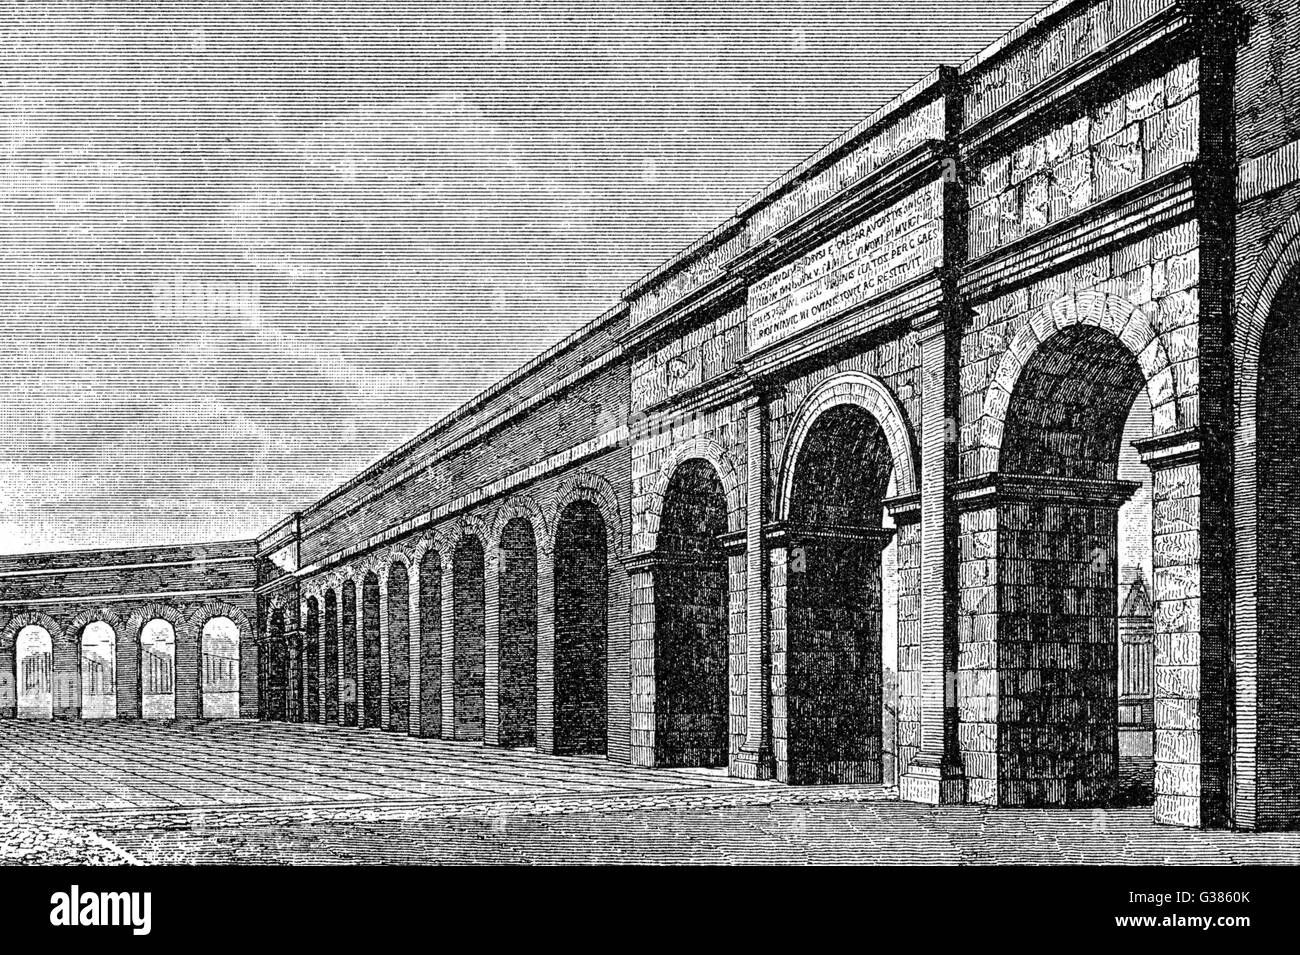 Reconstruction of the aqueduct  of Aqua Virgo         Date: circa 1902 - Stock Image